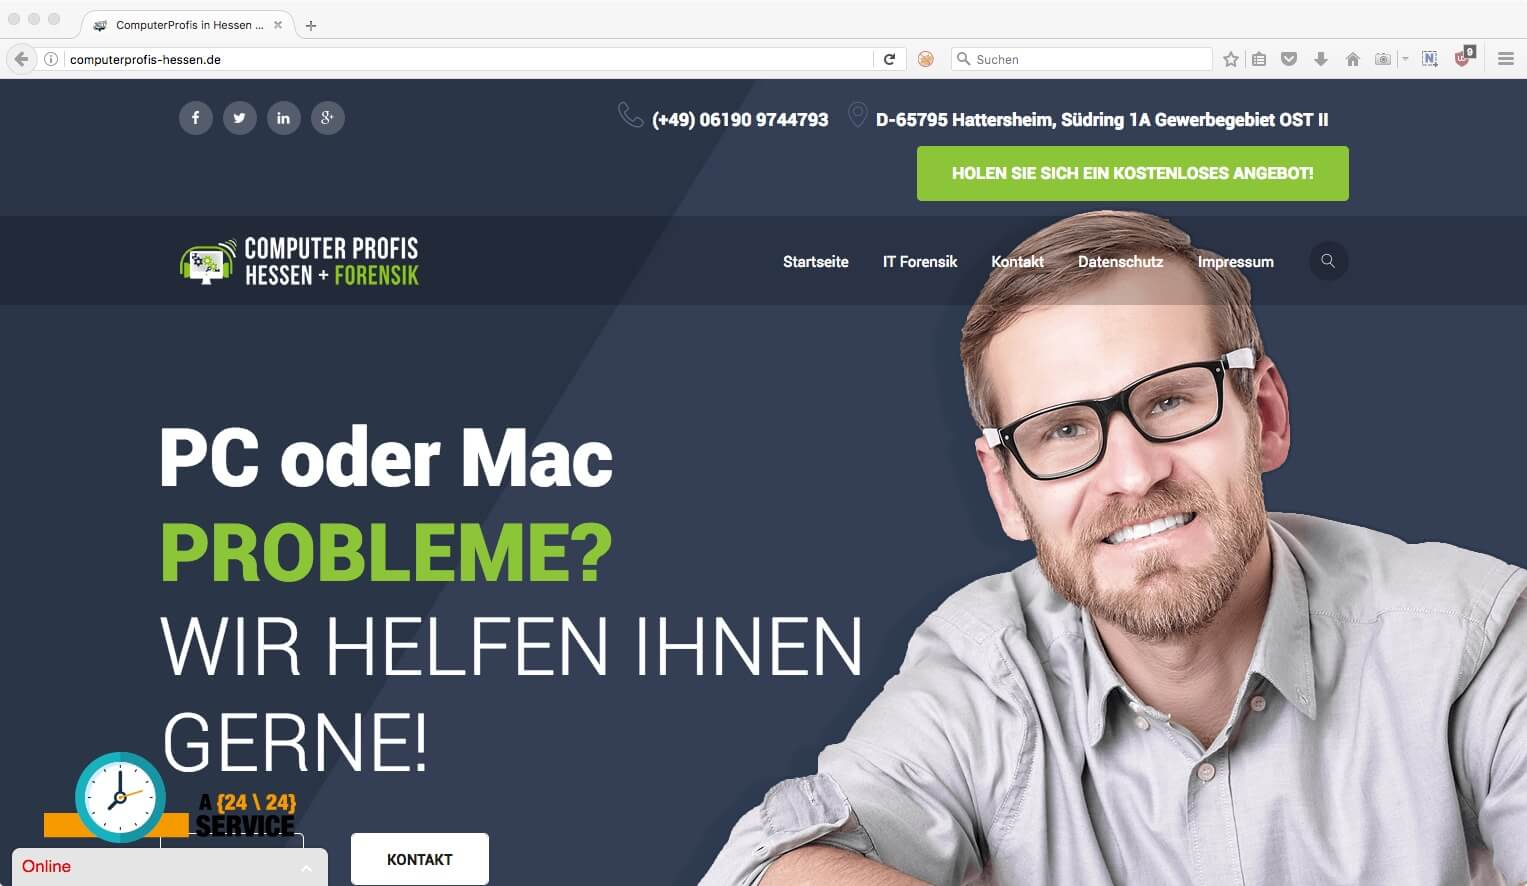 ComputerProfis Hessen